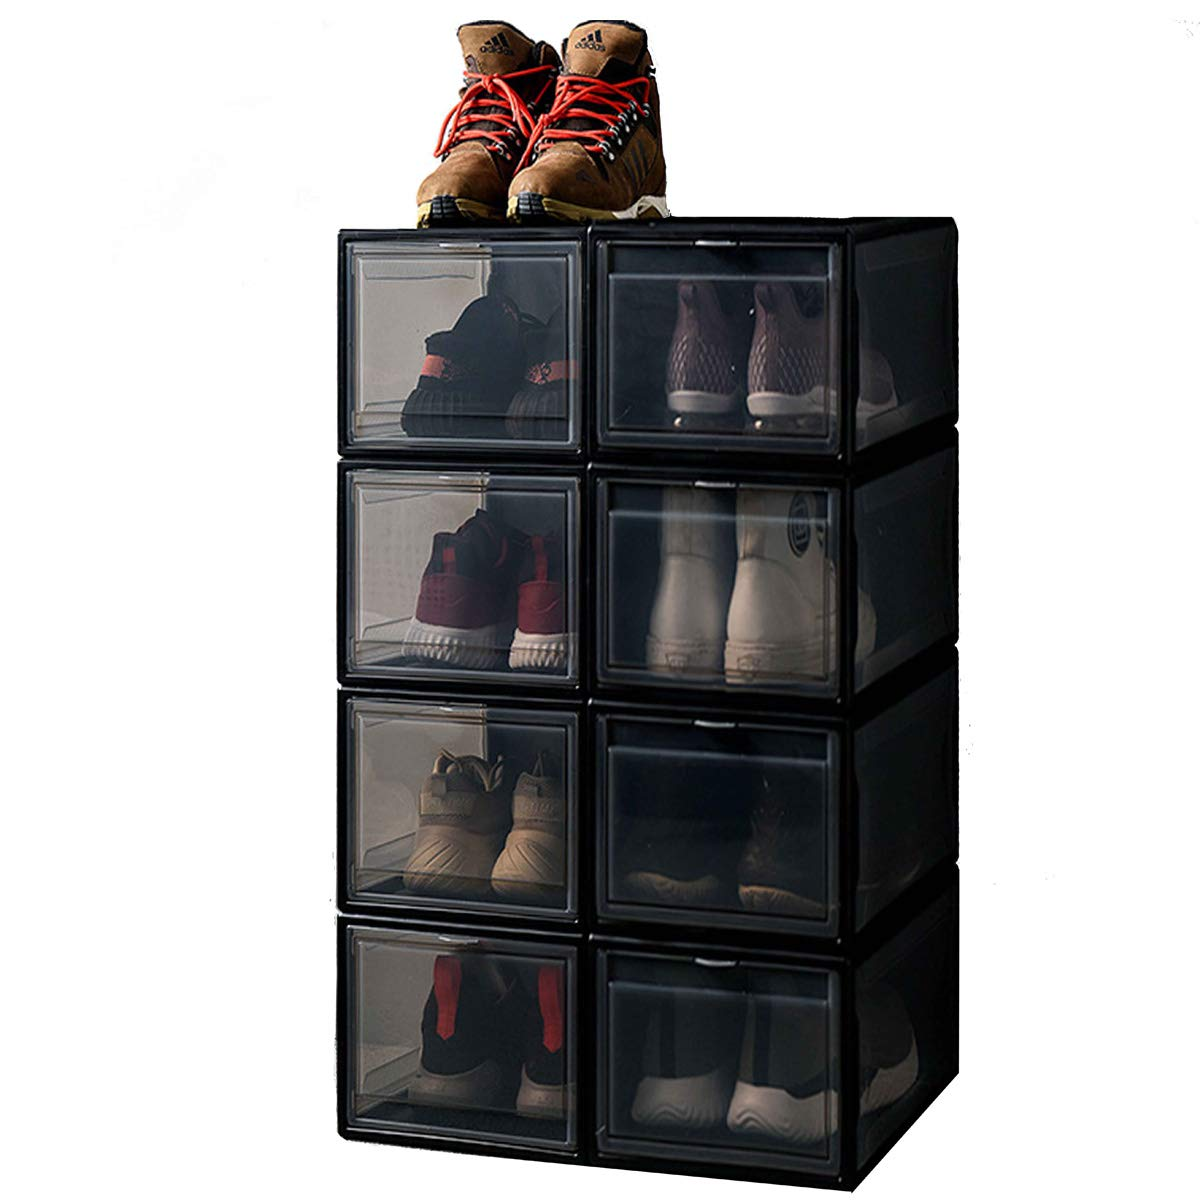 Wide AltraTech Shoe Box 4 Pack Drop-Front Shoe Storage Large Size Shoe Organizer Stackable for Shoe Collection Display Black